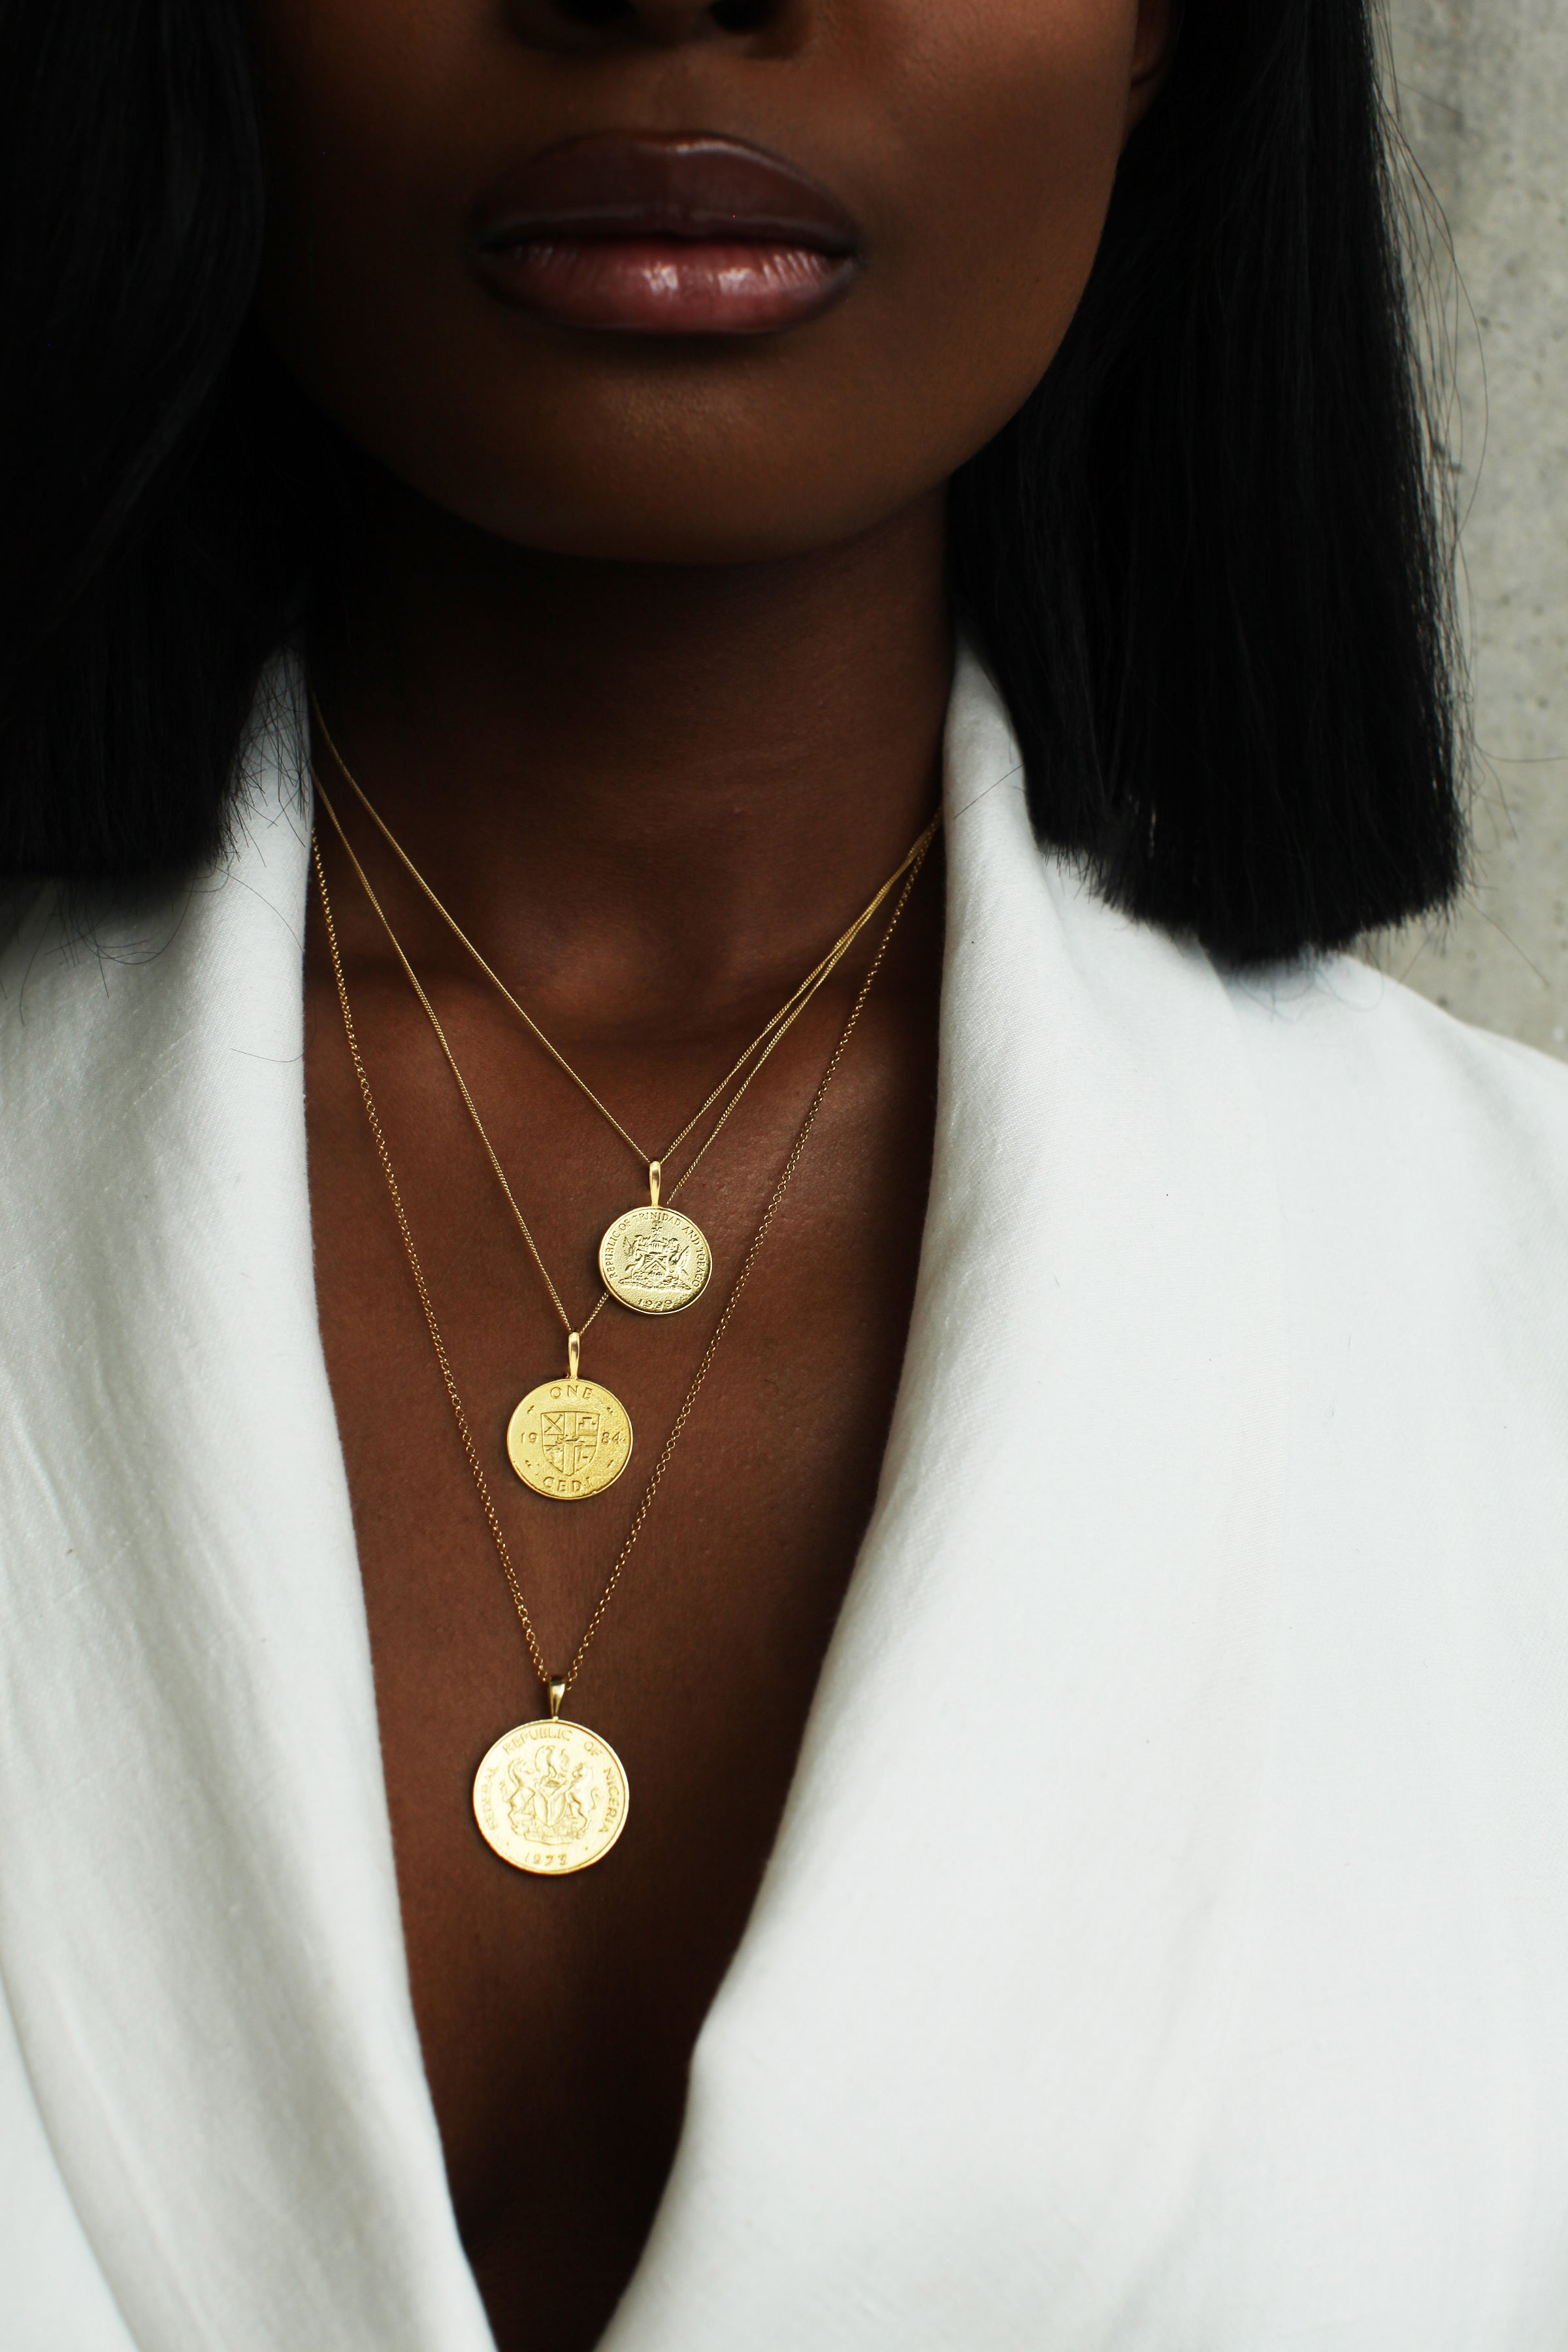 THE GHANA Crest and Cowrie Coin Necklace